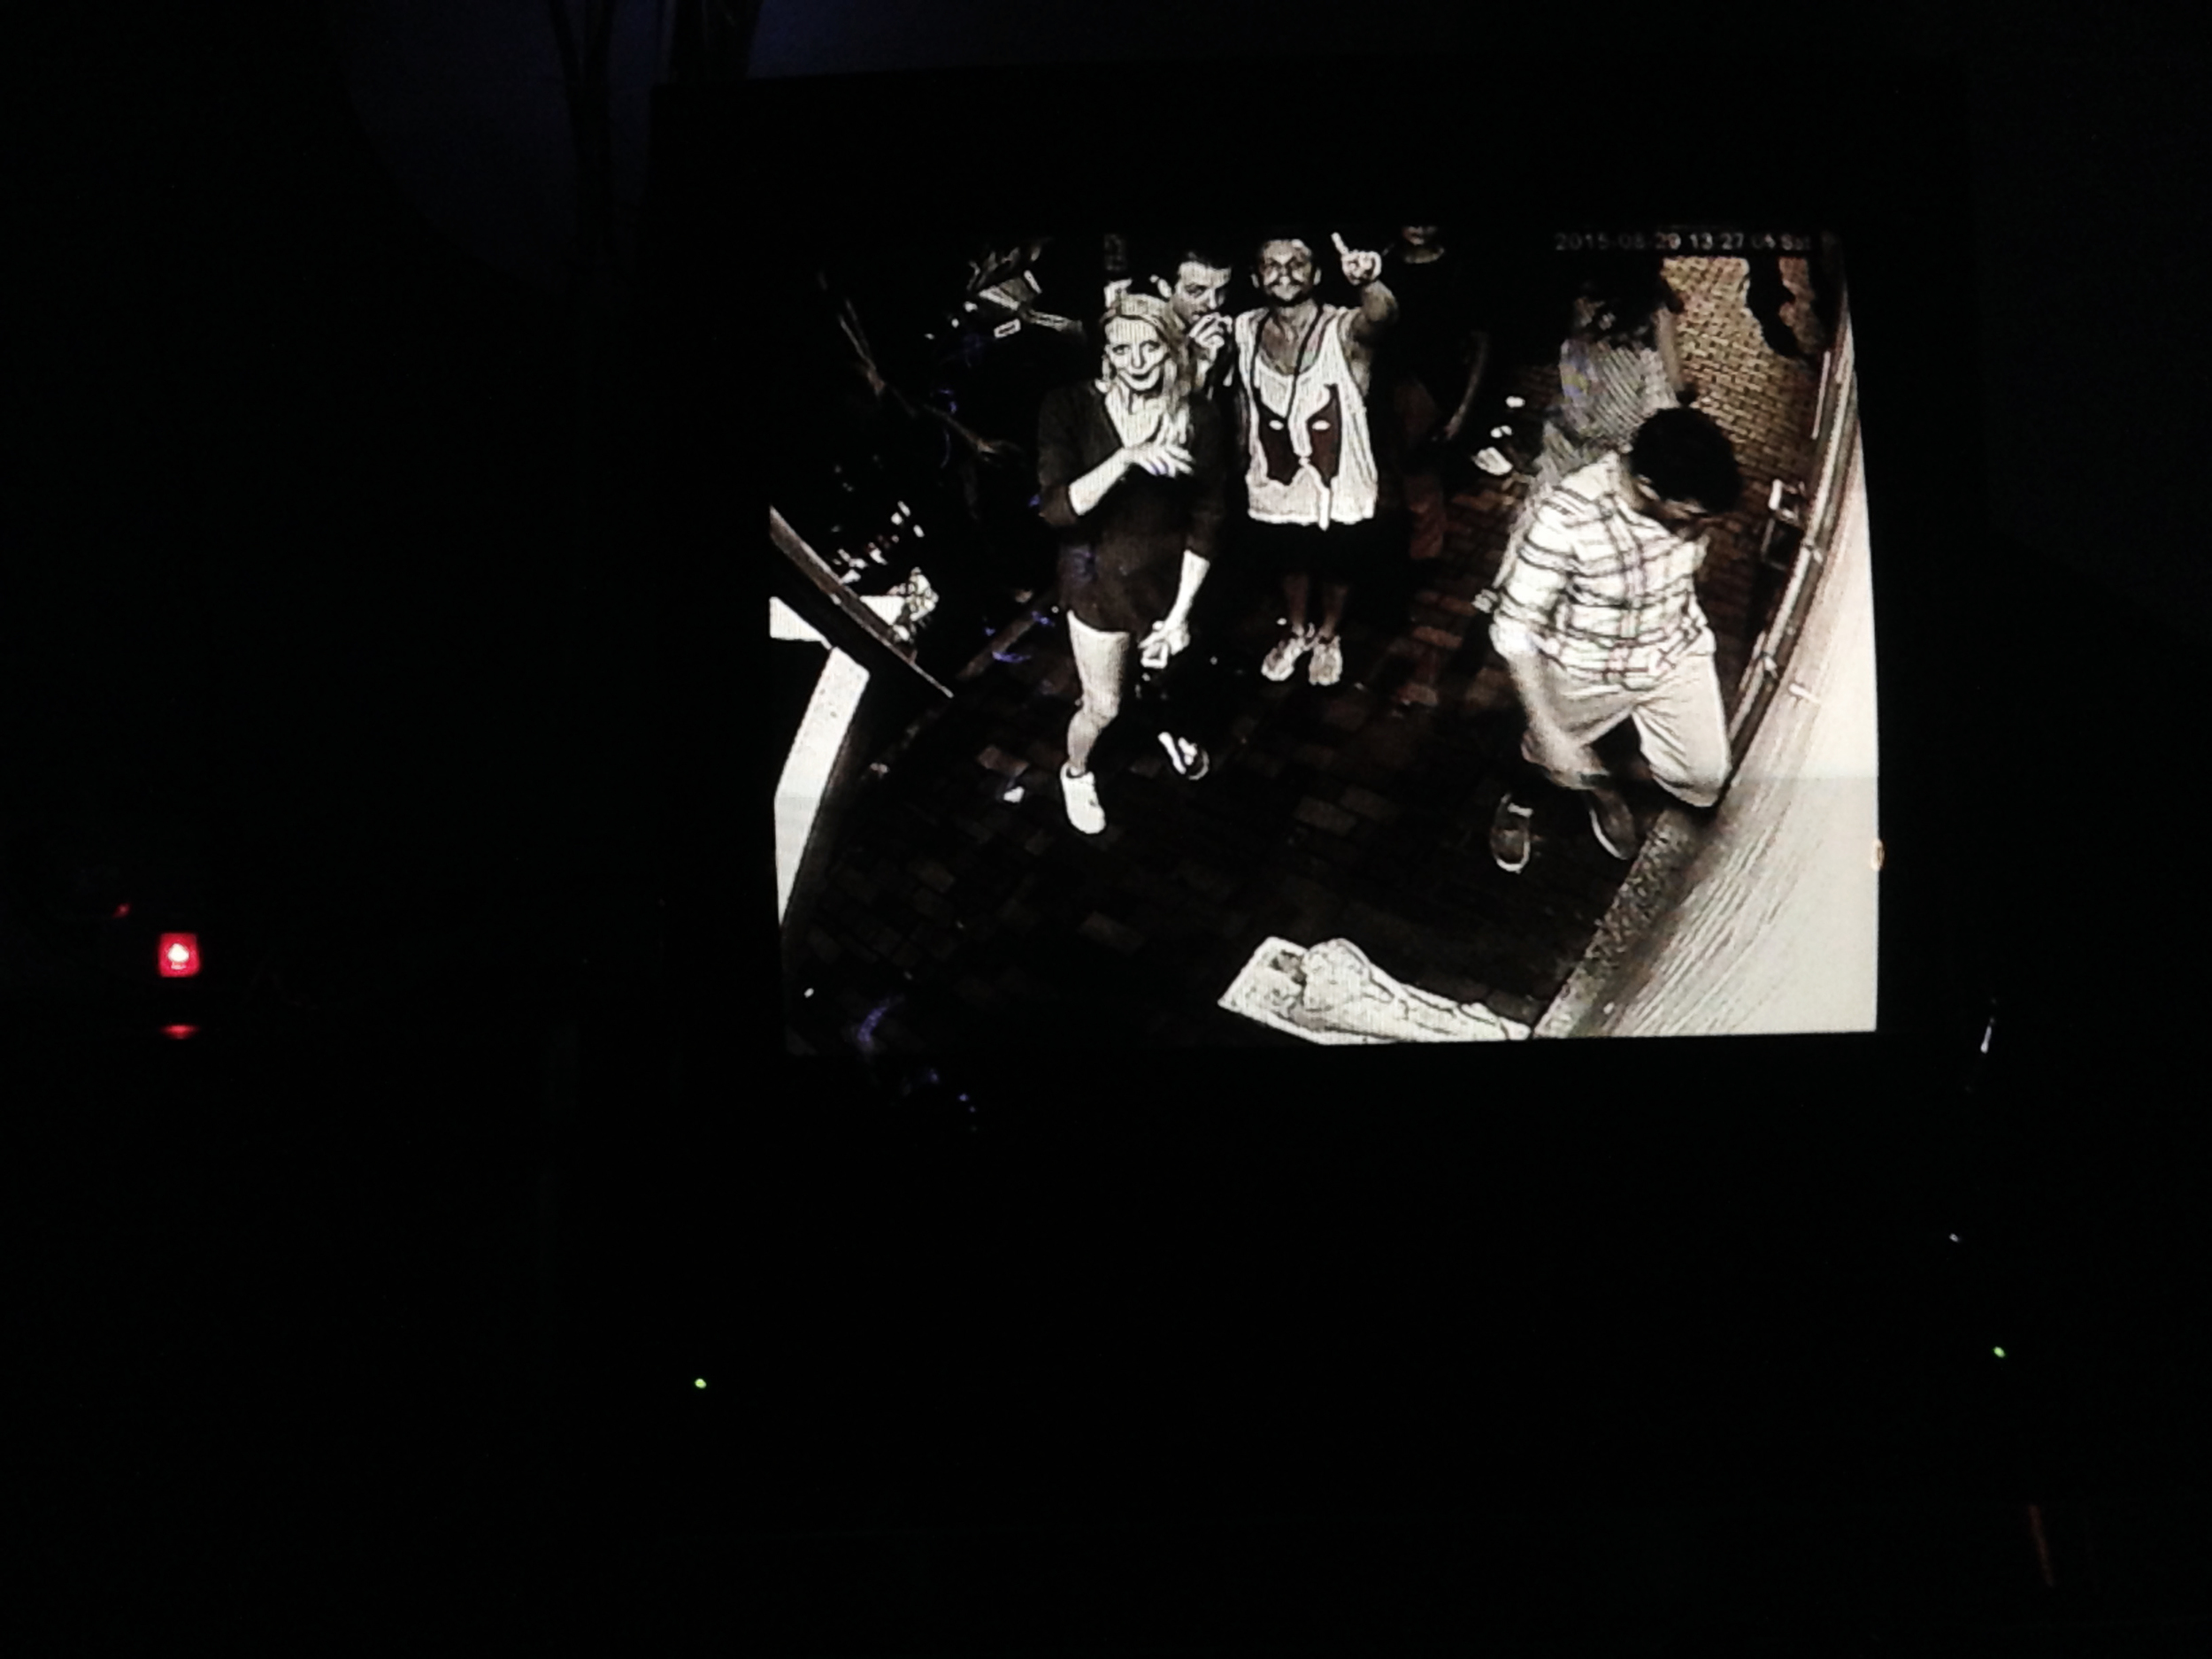 First night out with the exchange student crew. Here captured on surveillance camera on our way into The Premium Sofa Club.